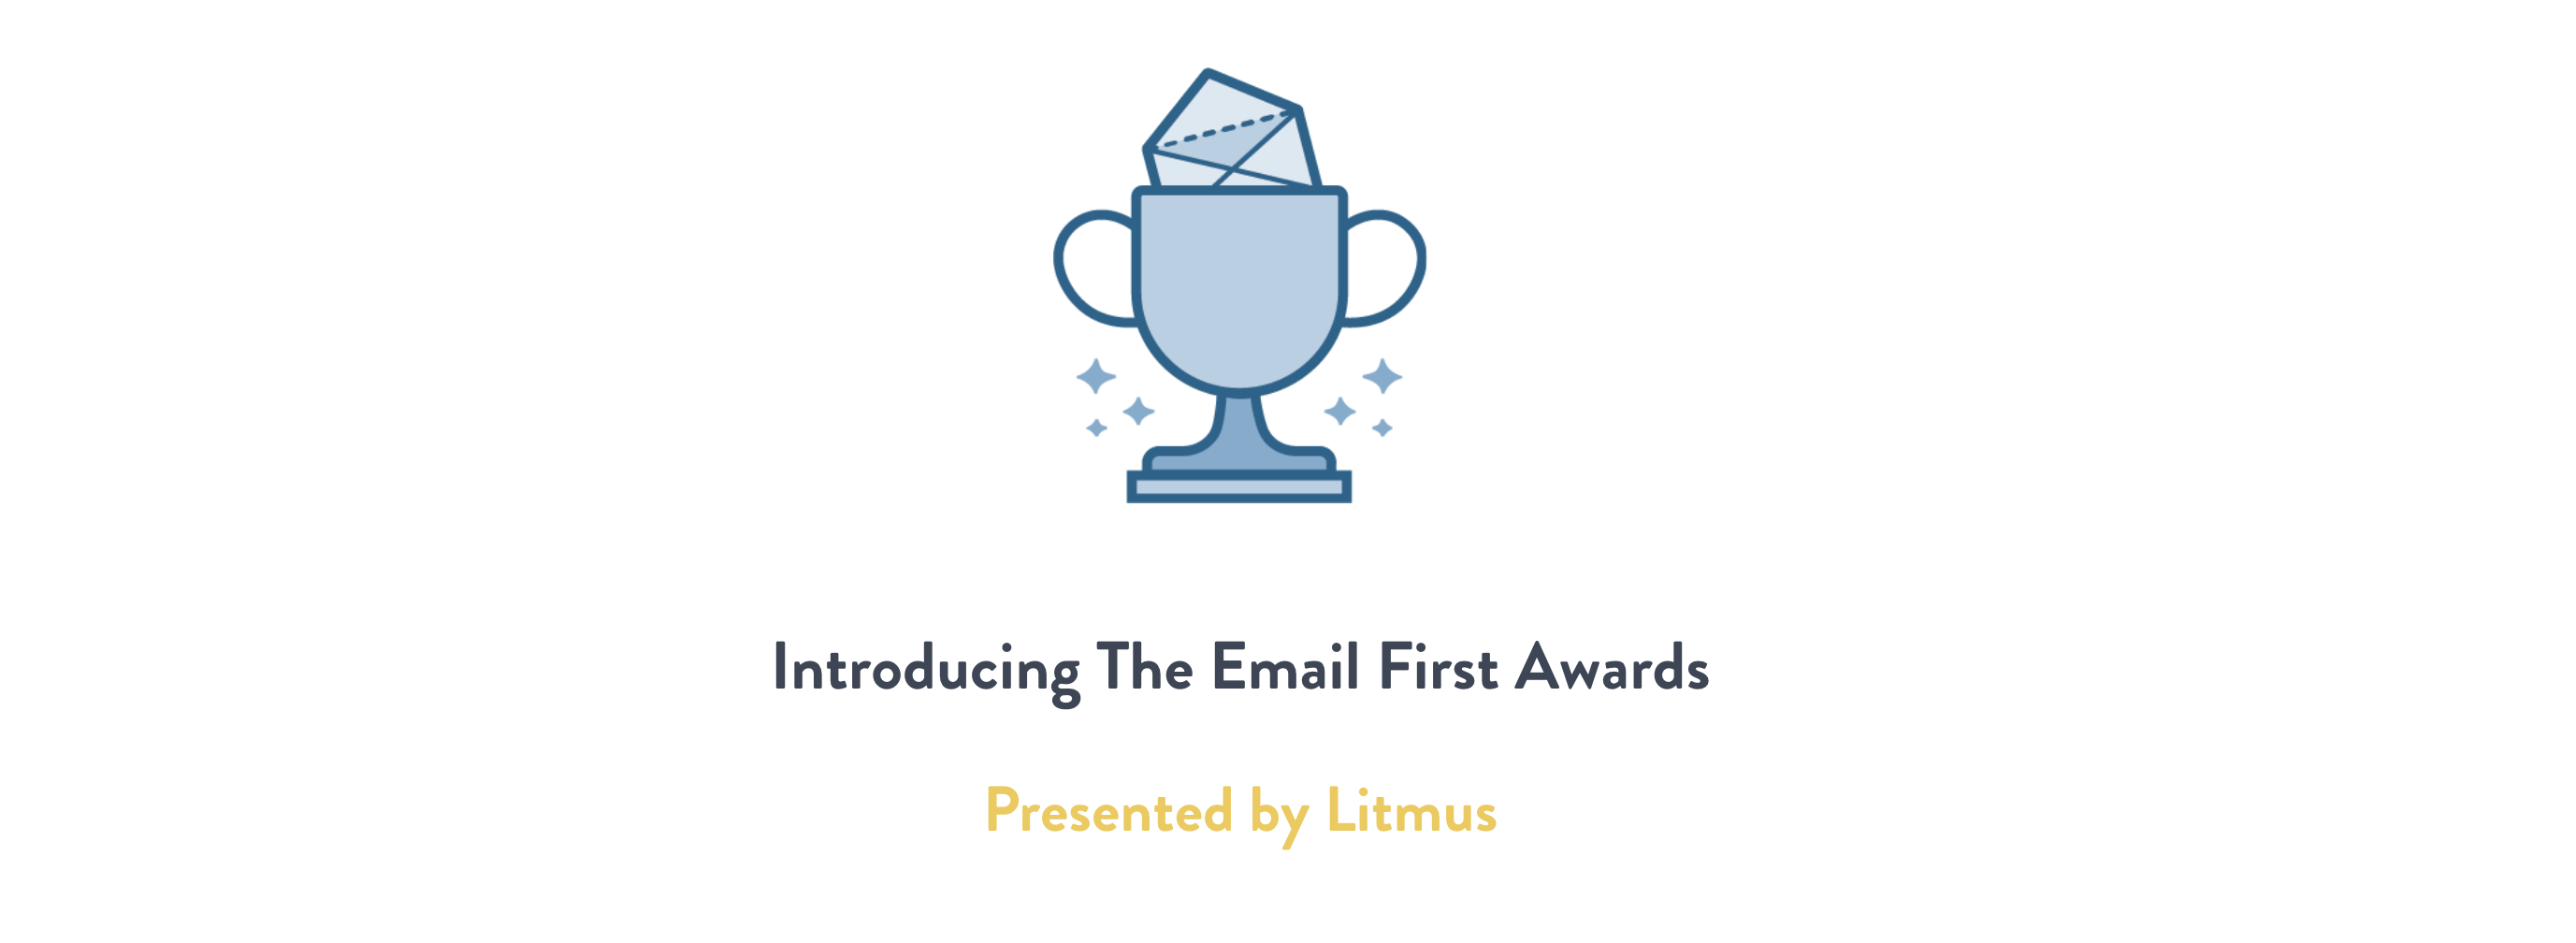 3 Tips: Craft an Eye-Catching Entry for the Email First Awards